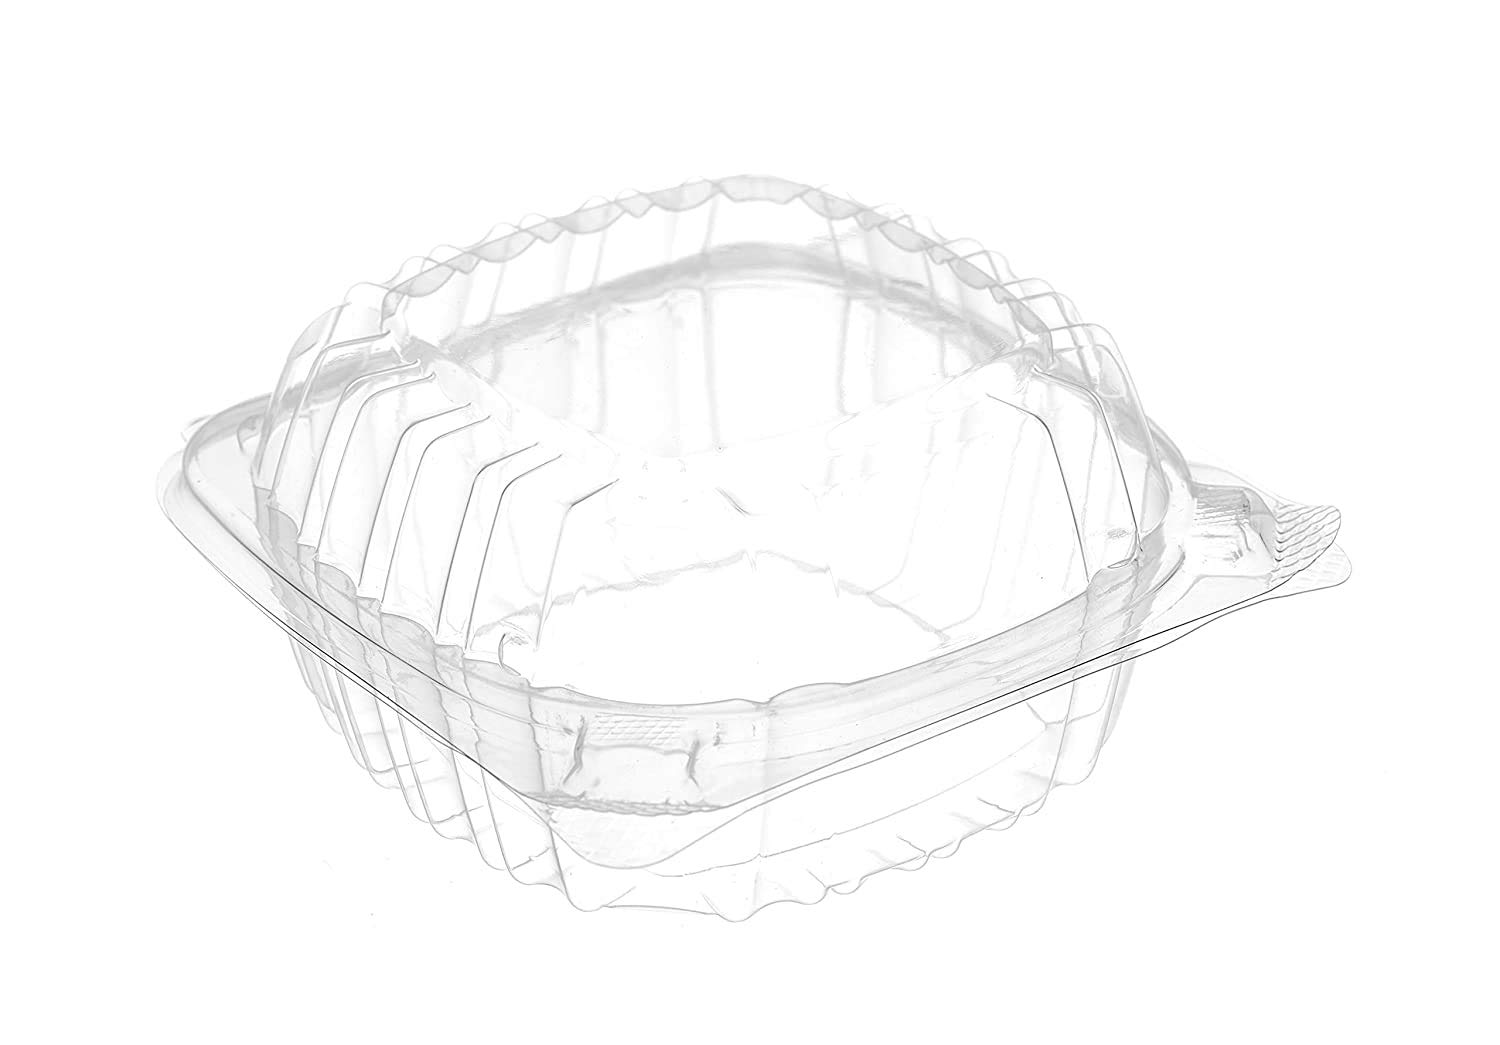 [150 Pack] 6x6 Clear Plastic Clam Shell Take Out Food Container - Take Out, Salad, Sandwich, Fruits, Polypropylene, Restaurant Supplies, Bidodegradable, Recyclable, Heavy Duty (6 x 6 inches)